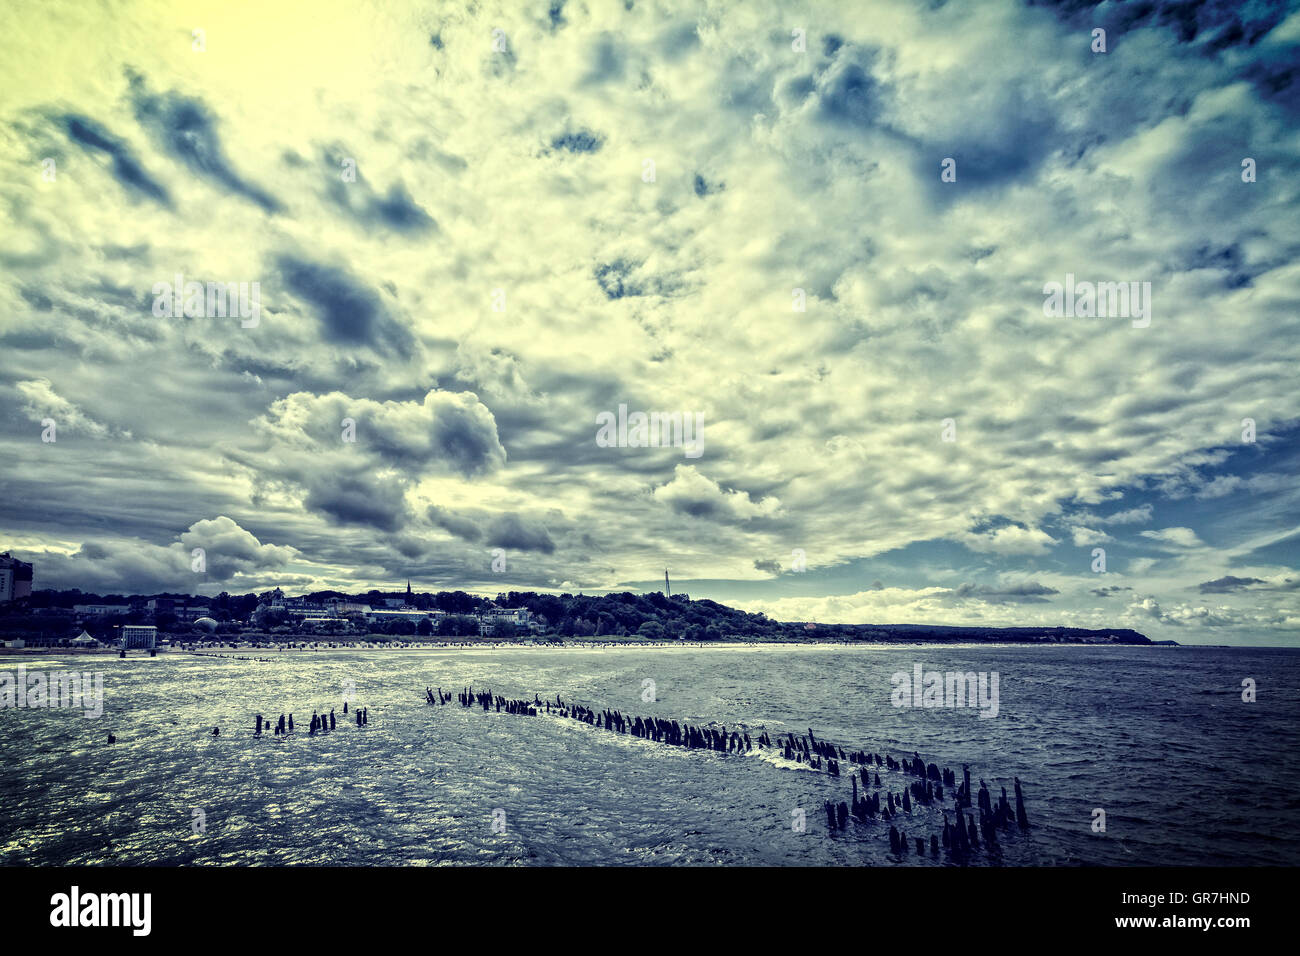 Climatic Conditions - Stock Image